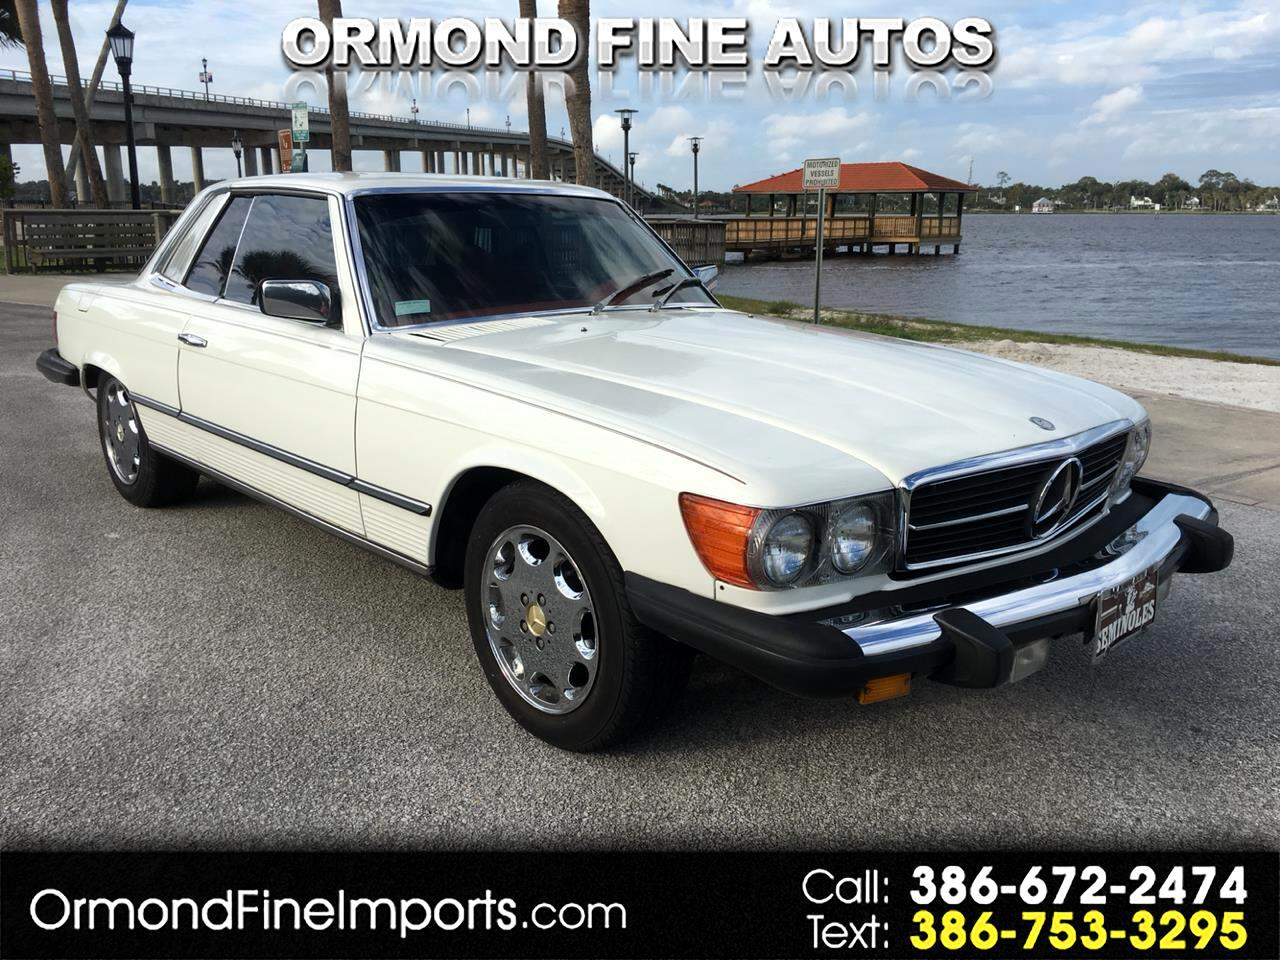 1979 Mercedes-Benz 450 SLC